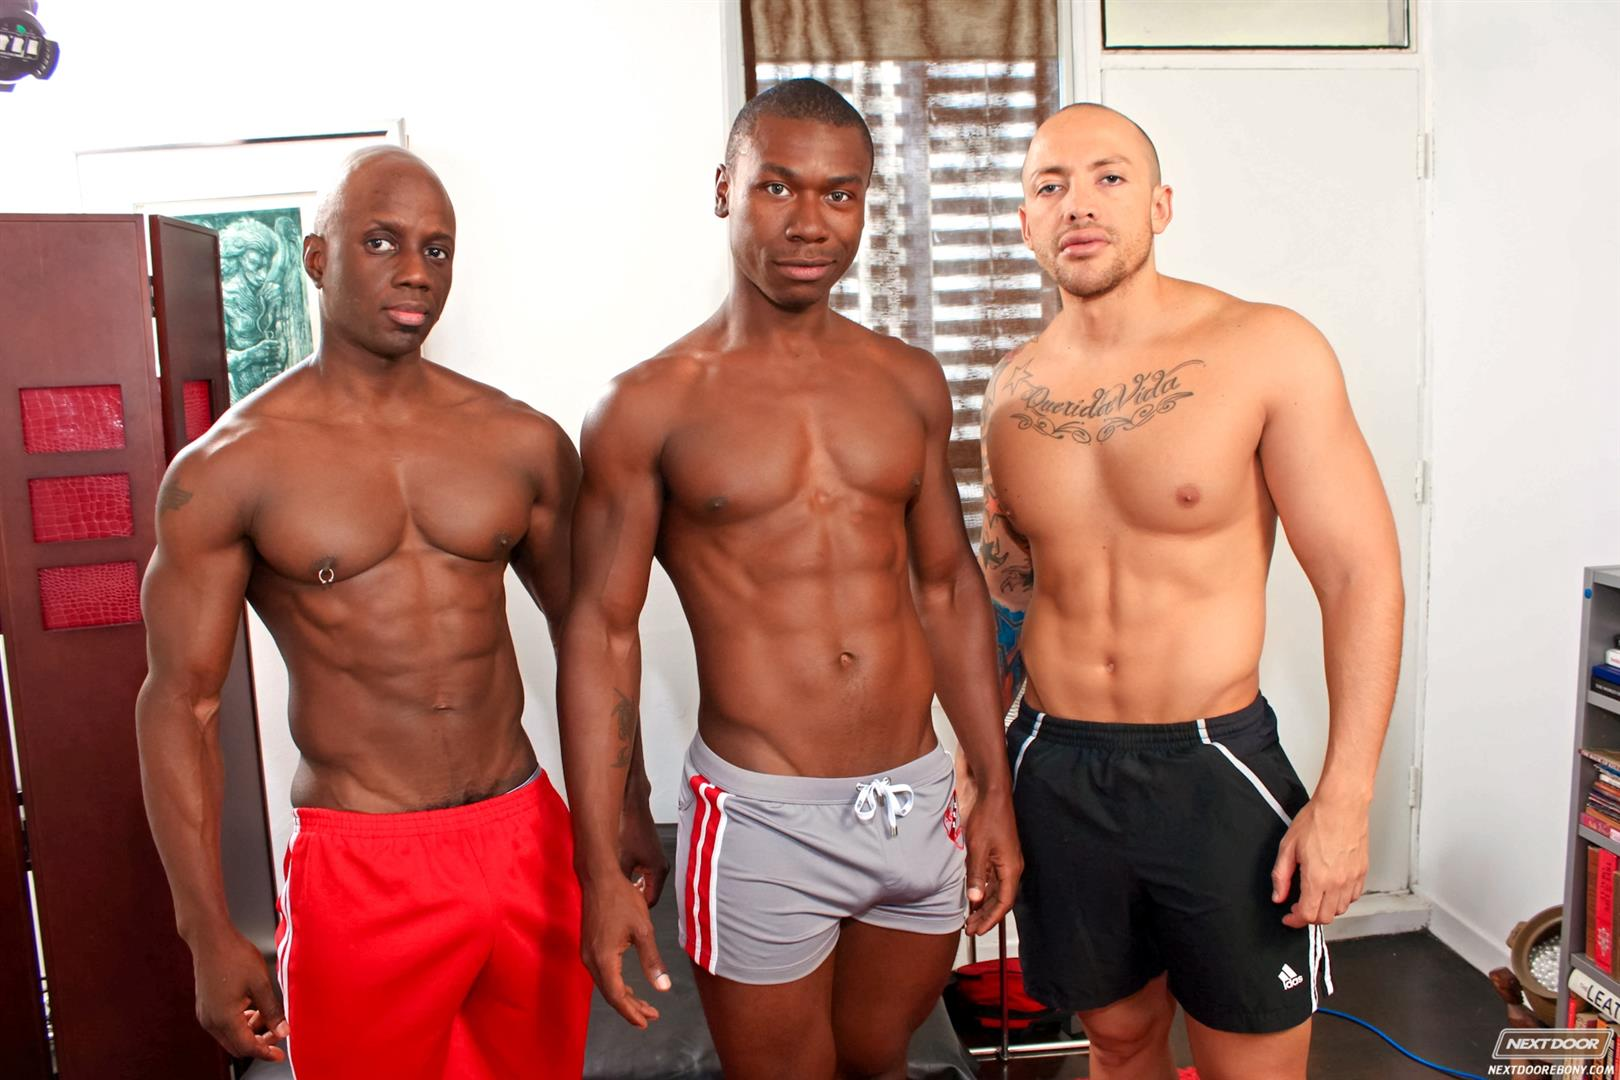 Next-Door-Ebony-Jordano-Santoro-and-Jay-Black-and-Damian-Brooks-Interracial-Gay-Fucking-Threeway-Amateur-Gay-Porn-01.jpg